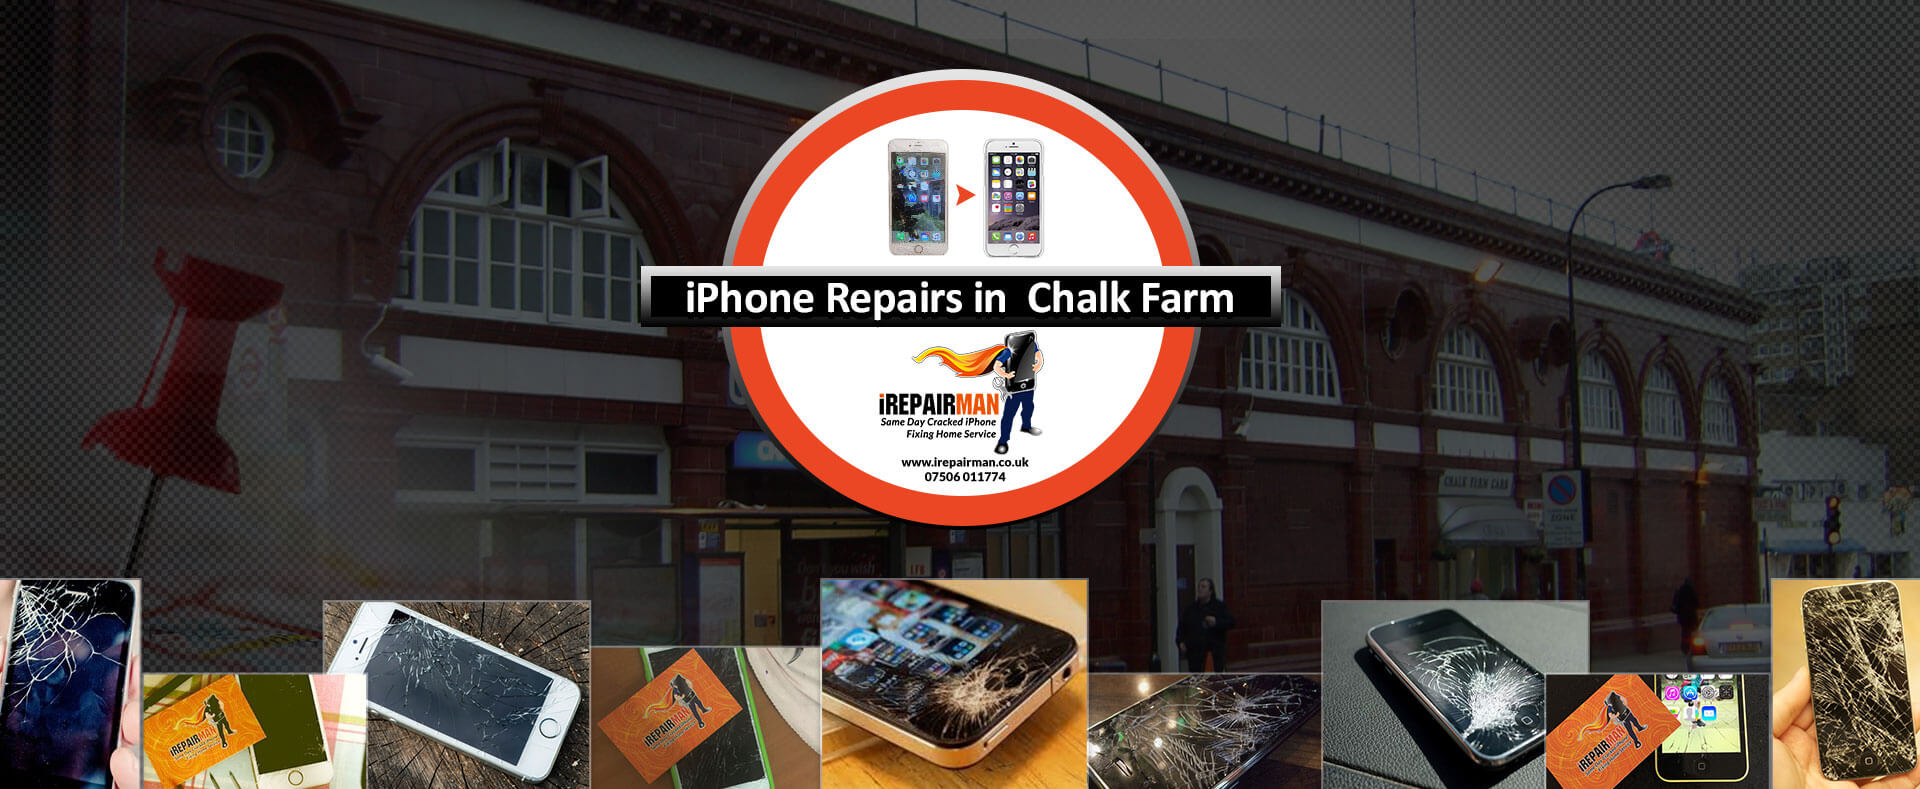 iPhone Repairs in Chalk Farm